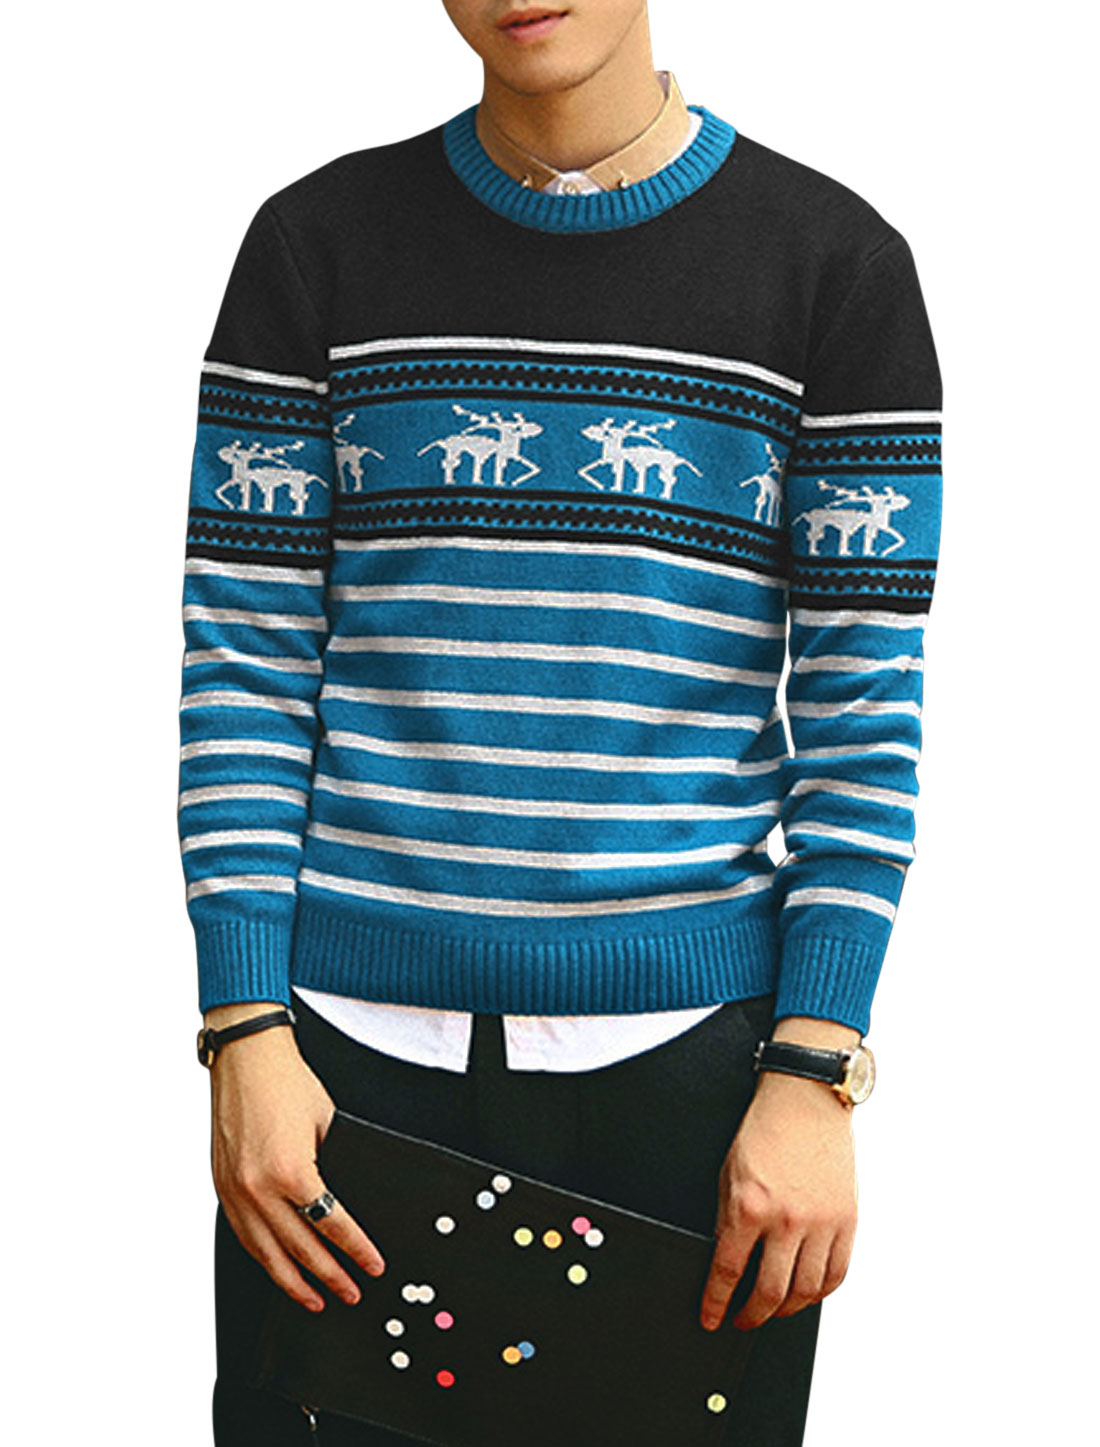 Men Newly Stylish Contrast Color Deer Pattern Zigzag Pattern Sweater Black Blue S